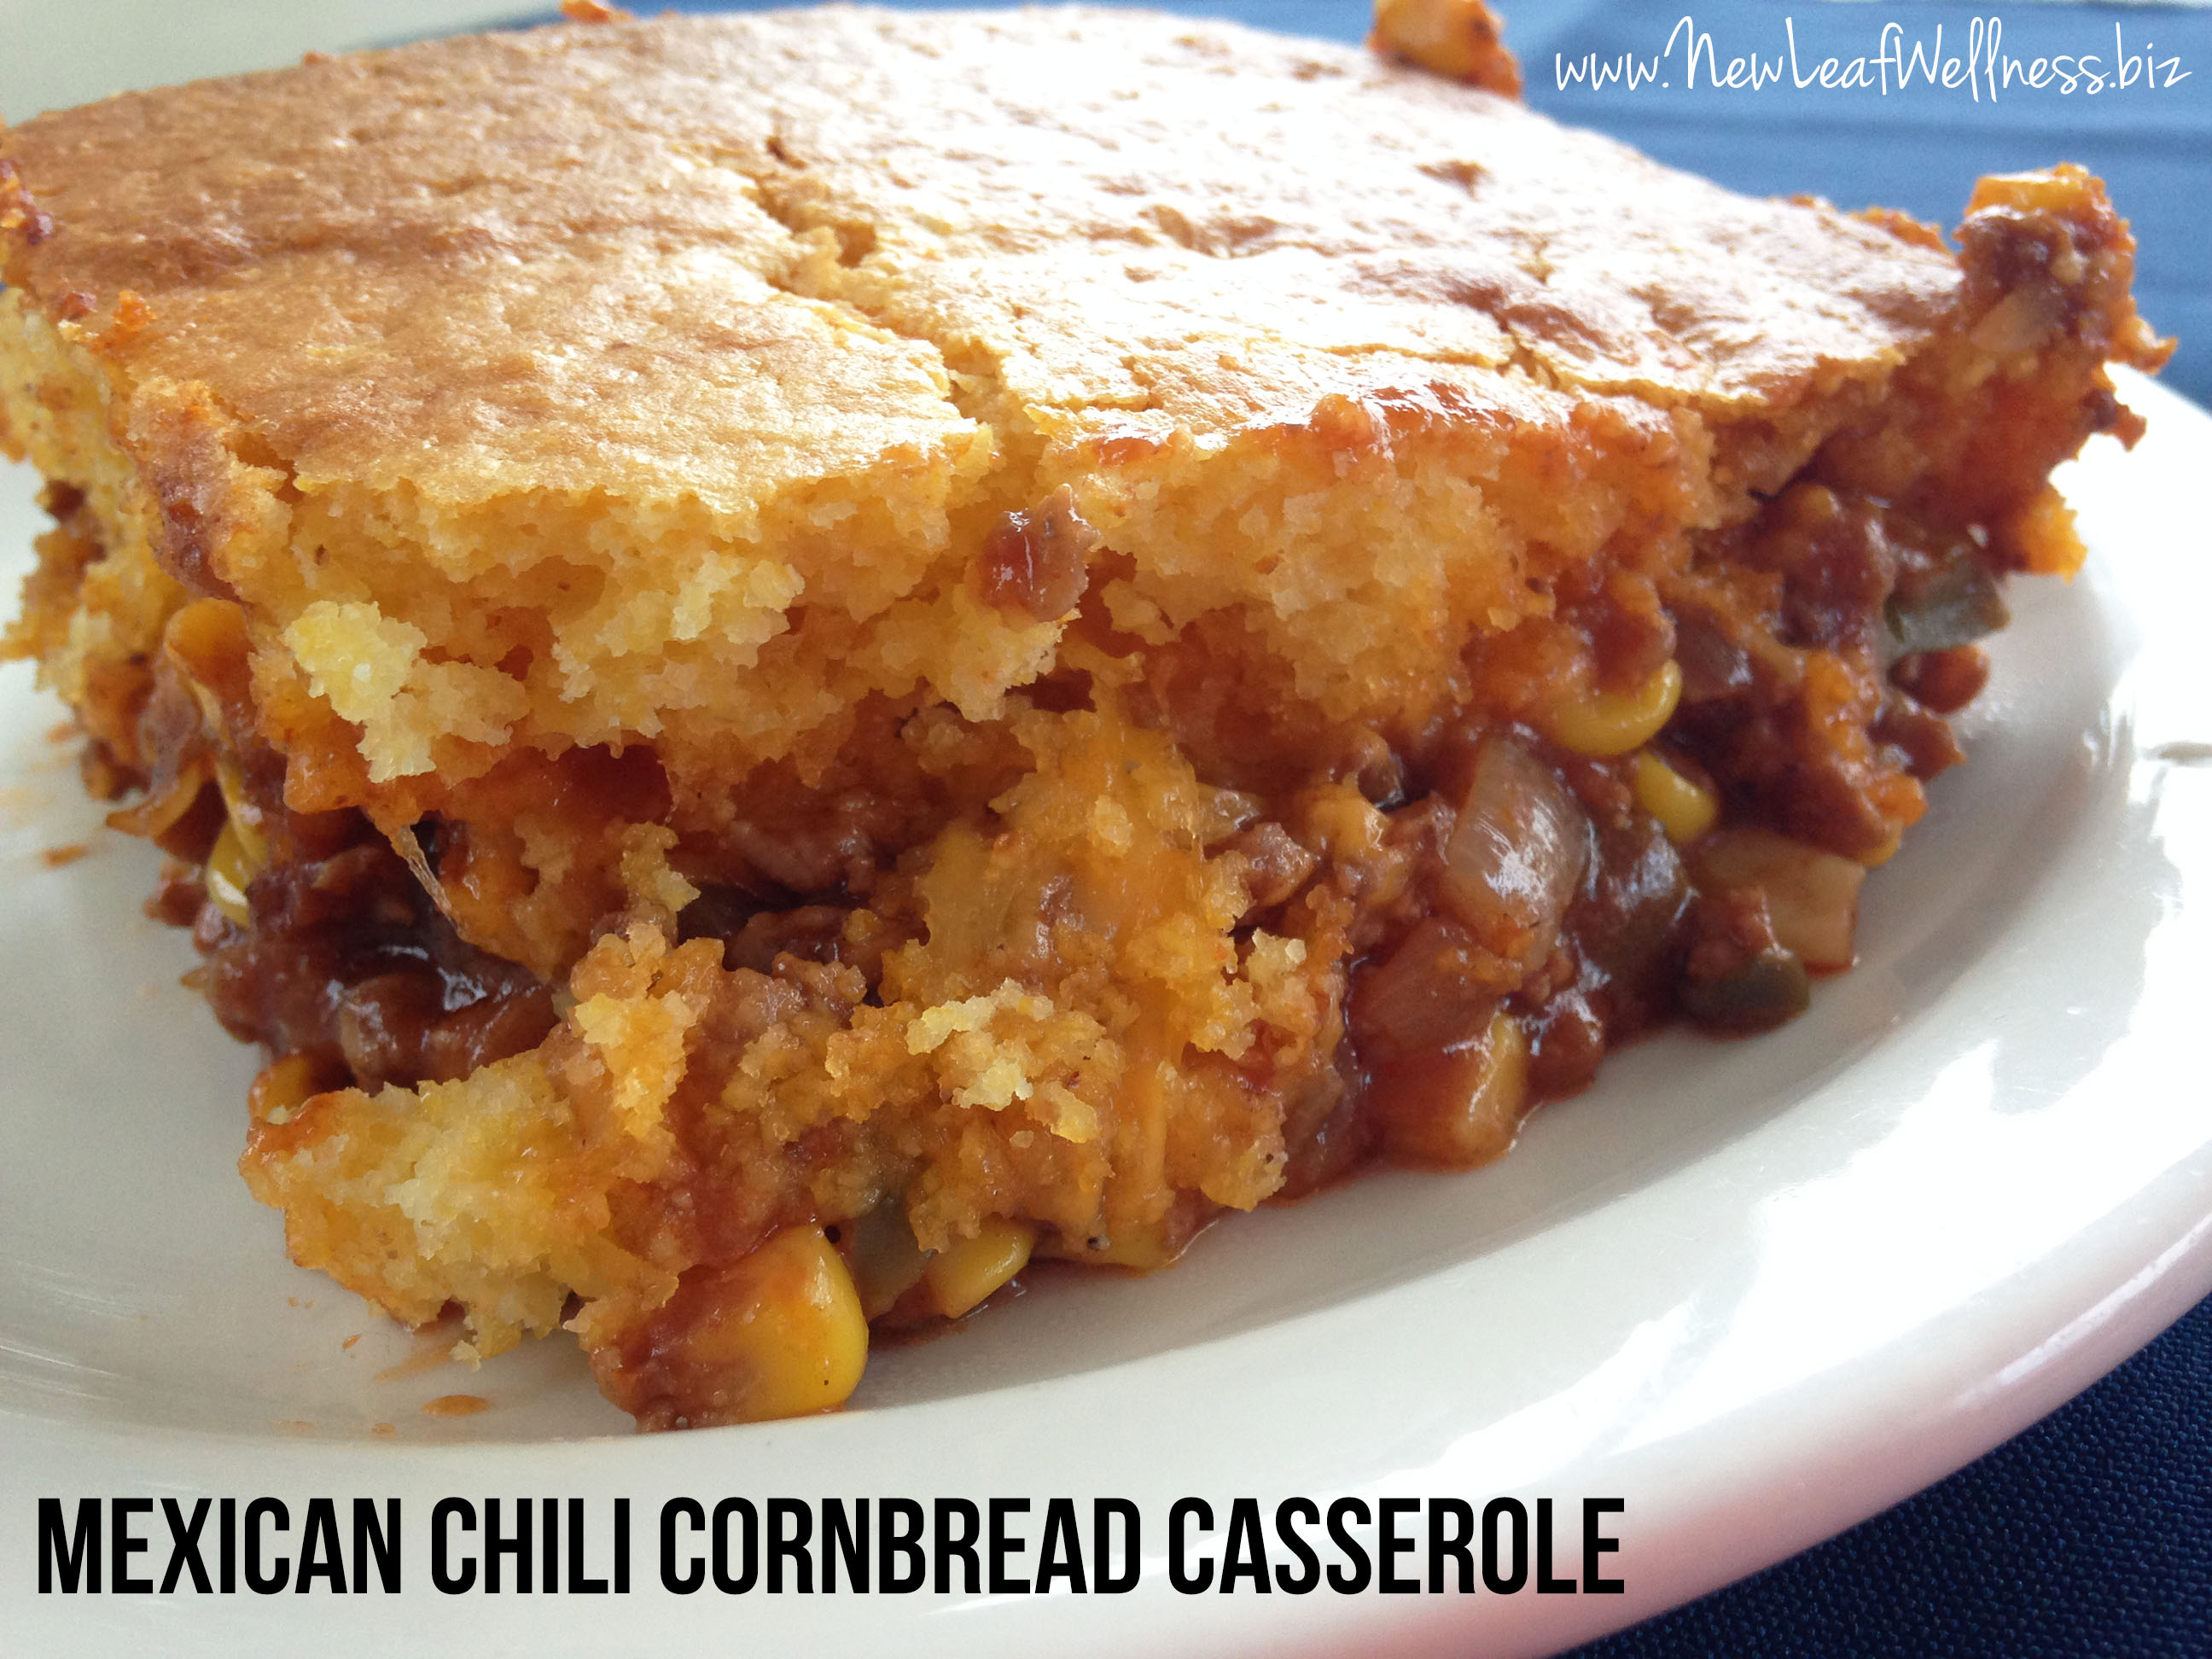 Mexican chili cornbread casserole recipe | New Leaf Wellness